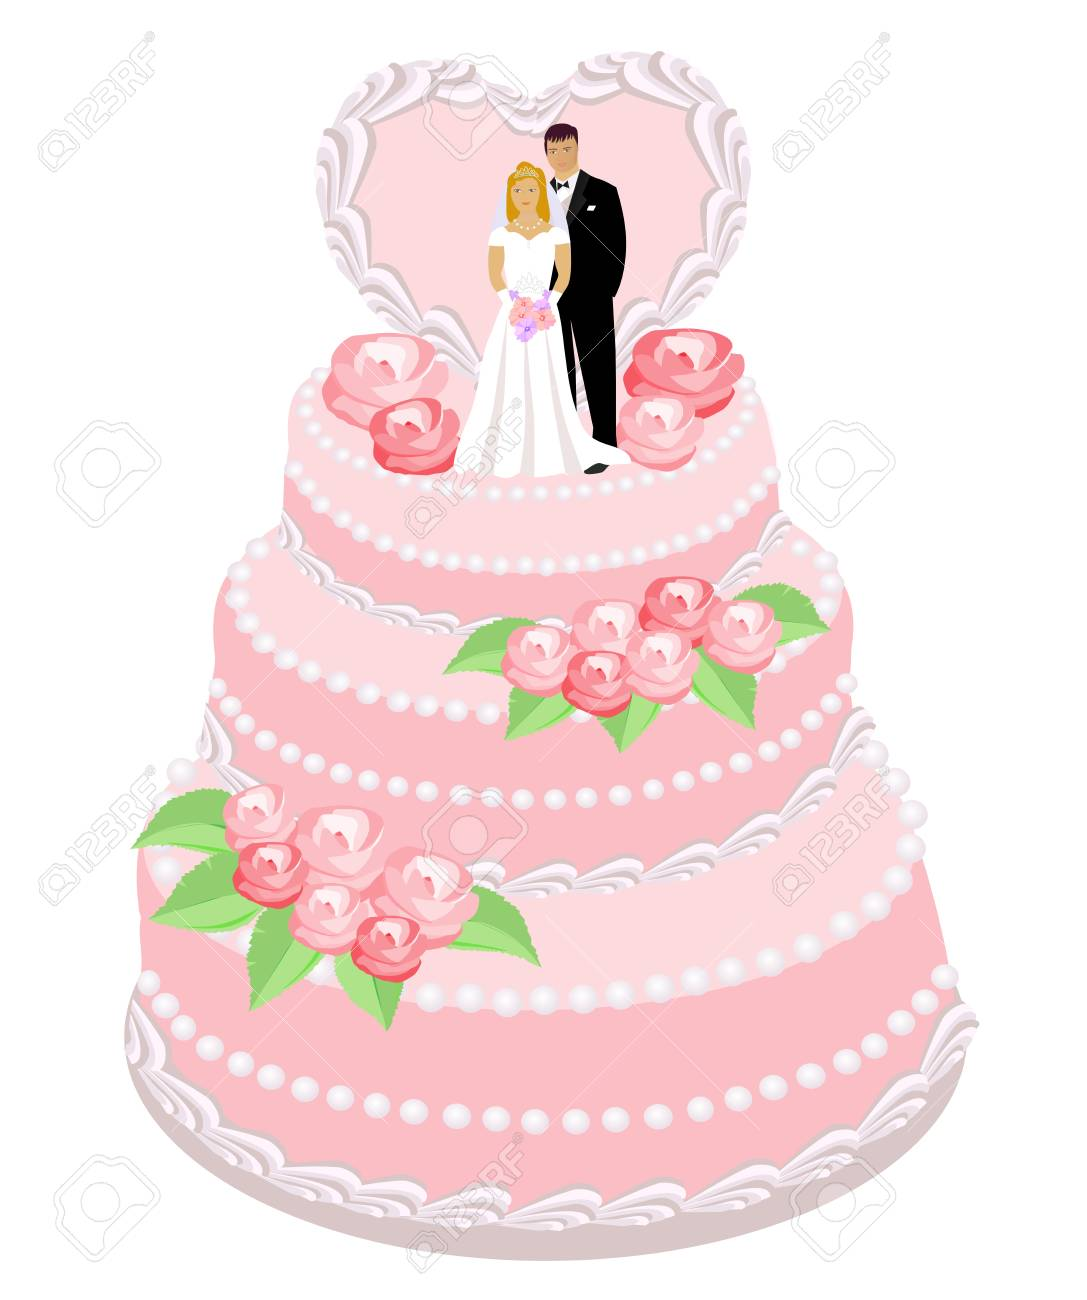 Wedding Cake With Roses, Bride And Groom Figures. Vector ...